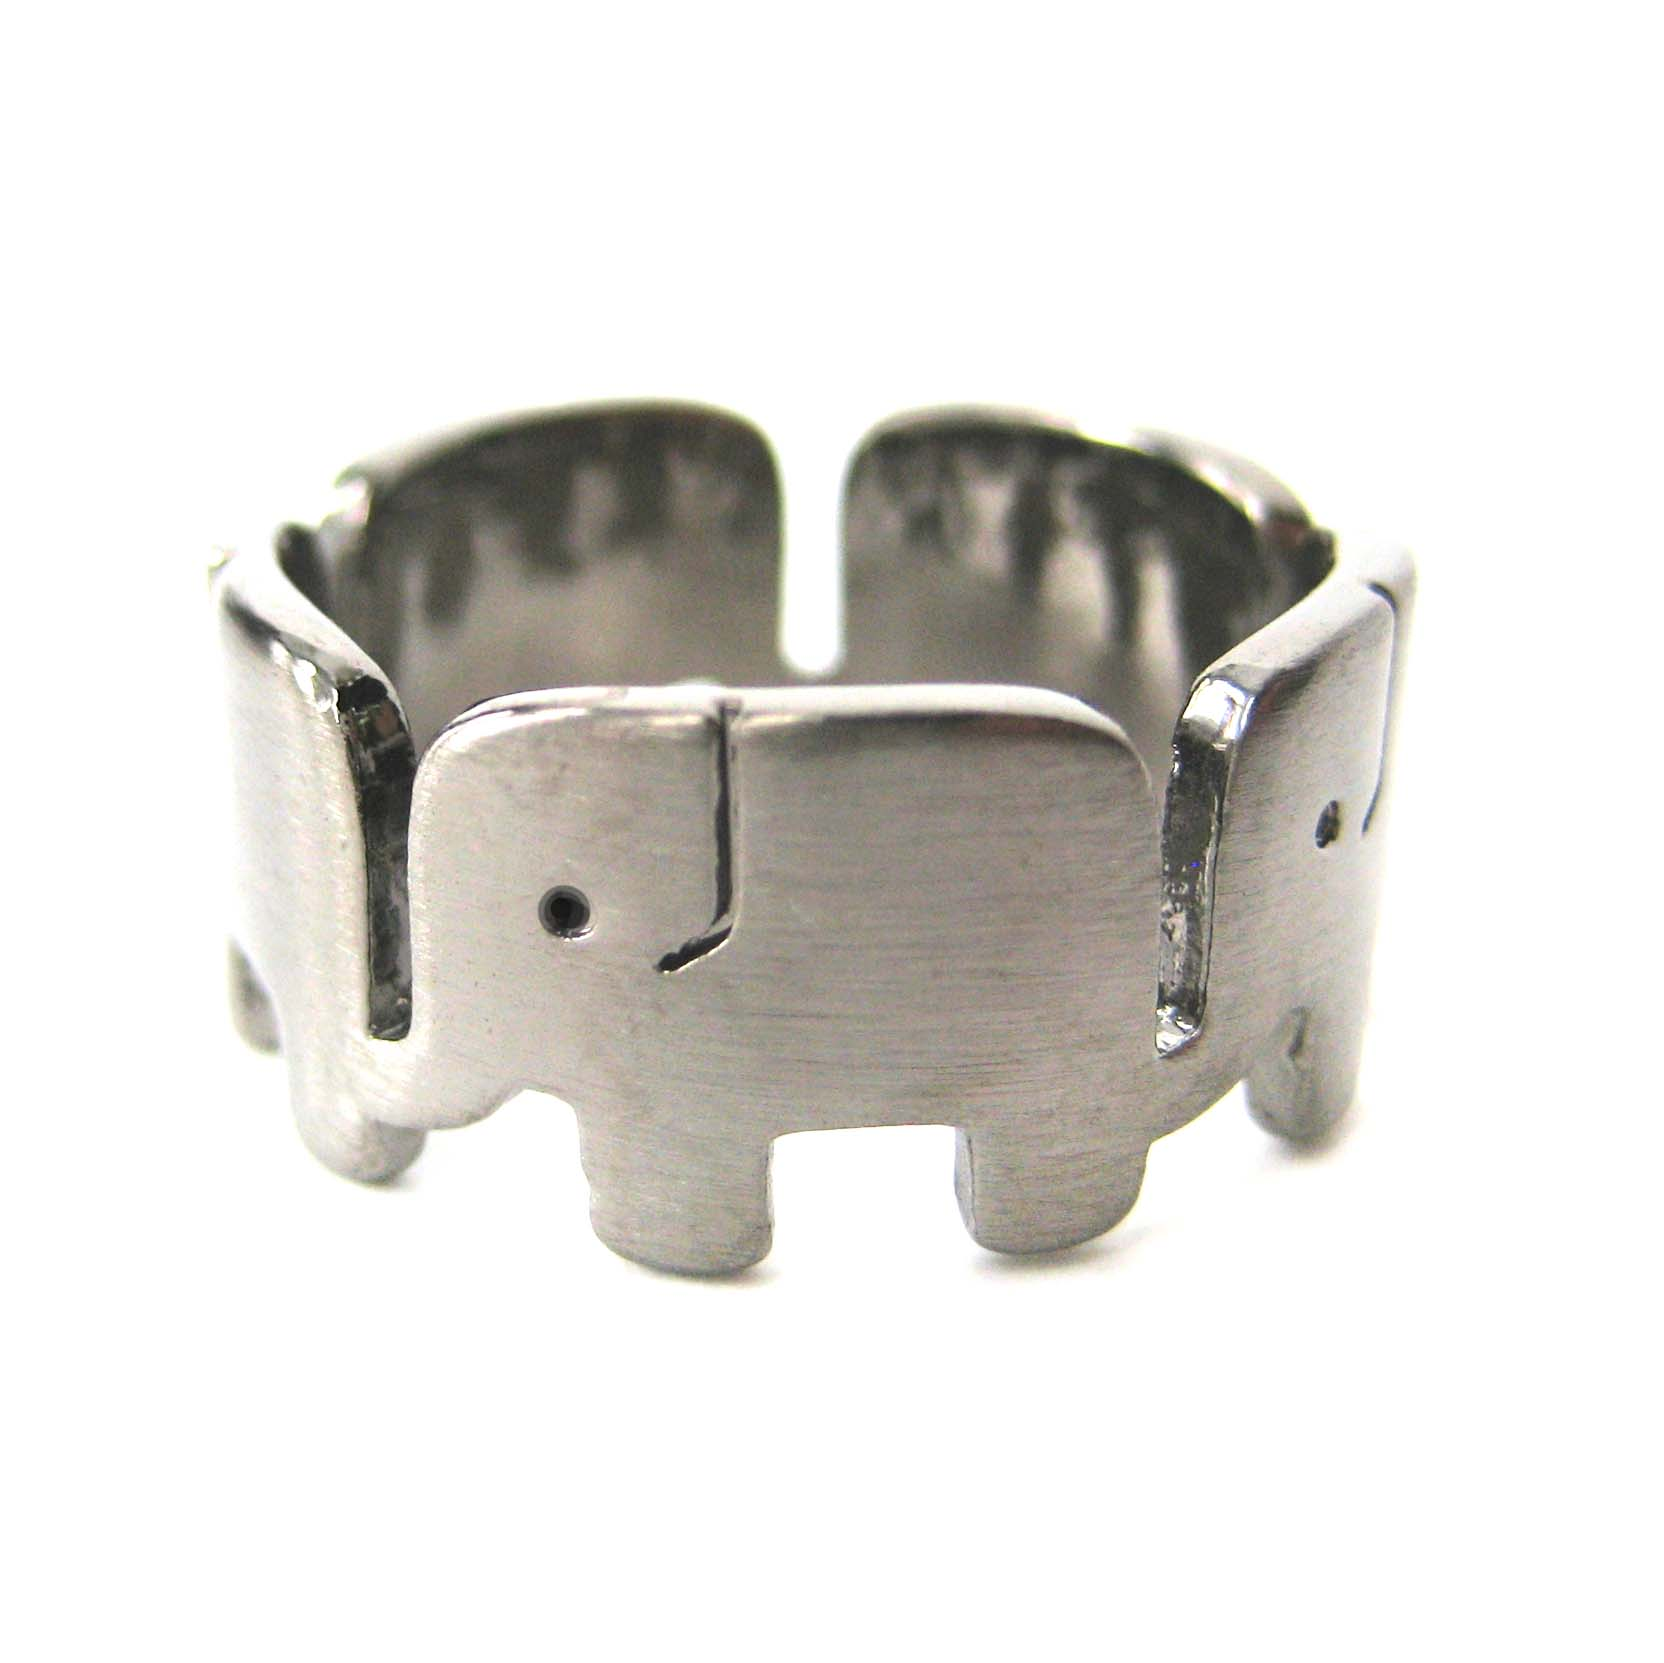 Elephant-family-parade-animal-ring-in-gunmetal-silver-us-size-6-to-8-available_original